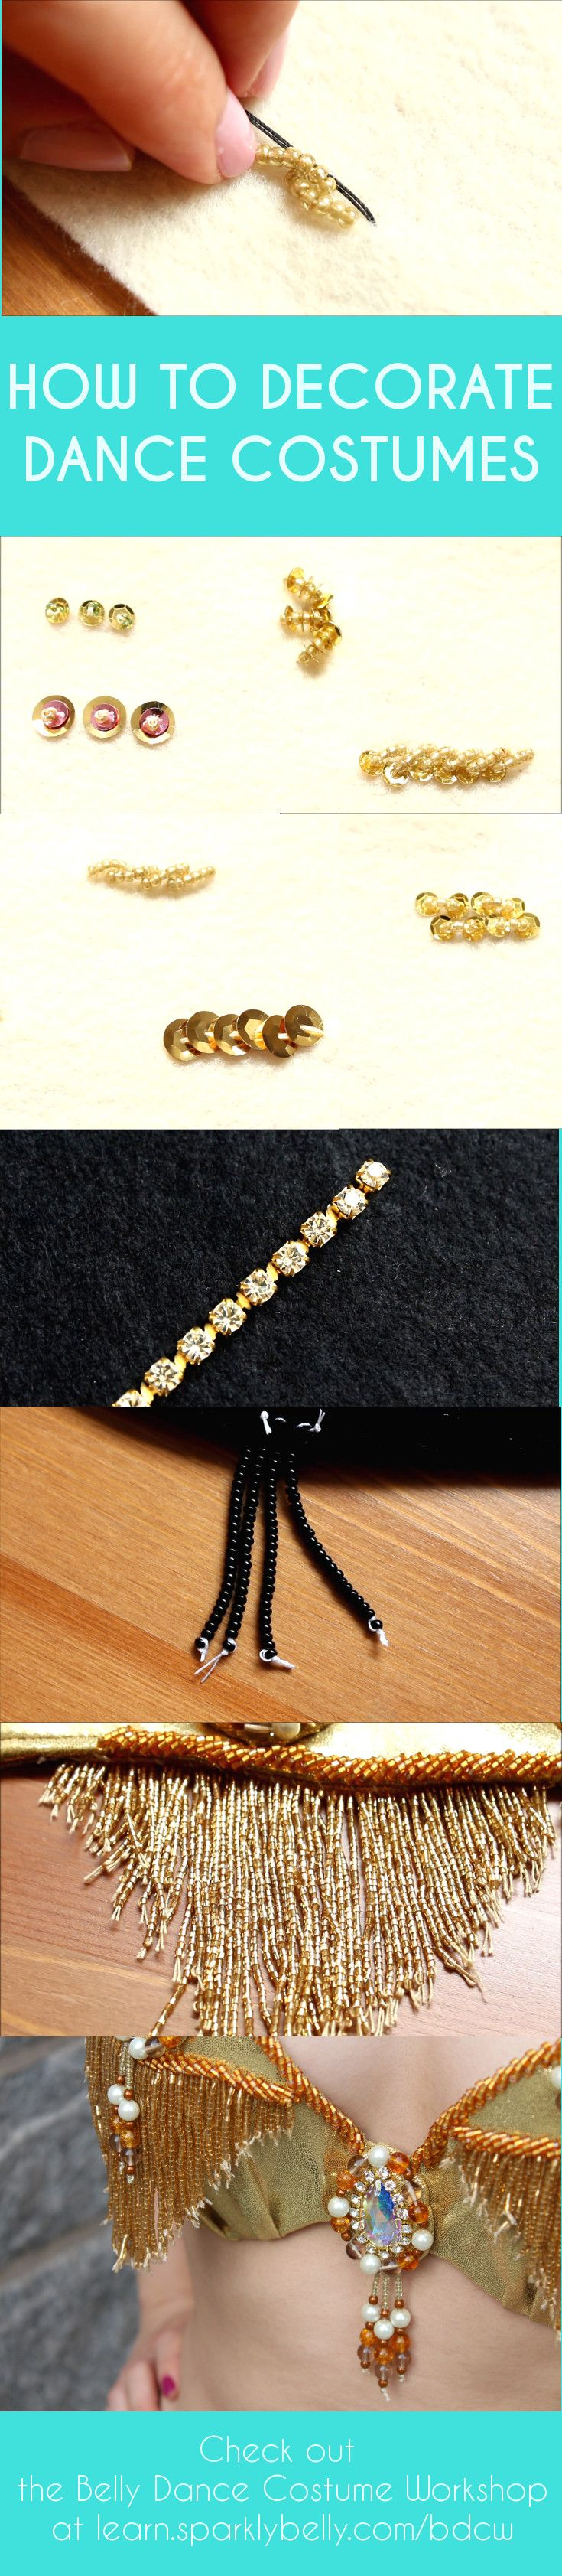 How to sew beads and sequins, how to make beaded fringes, how to sew on rhinestones and more...!